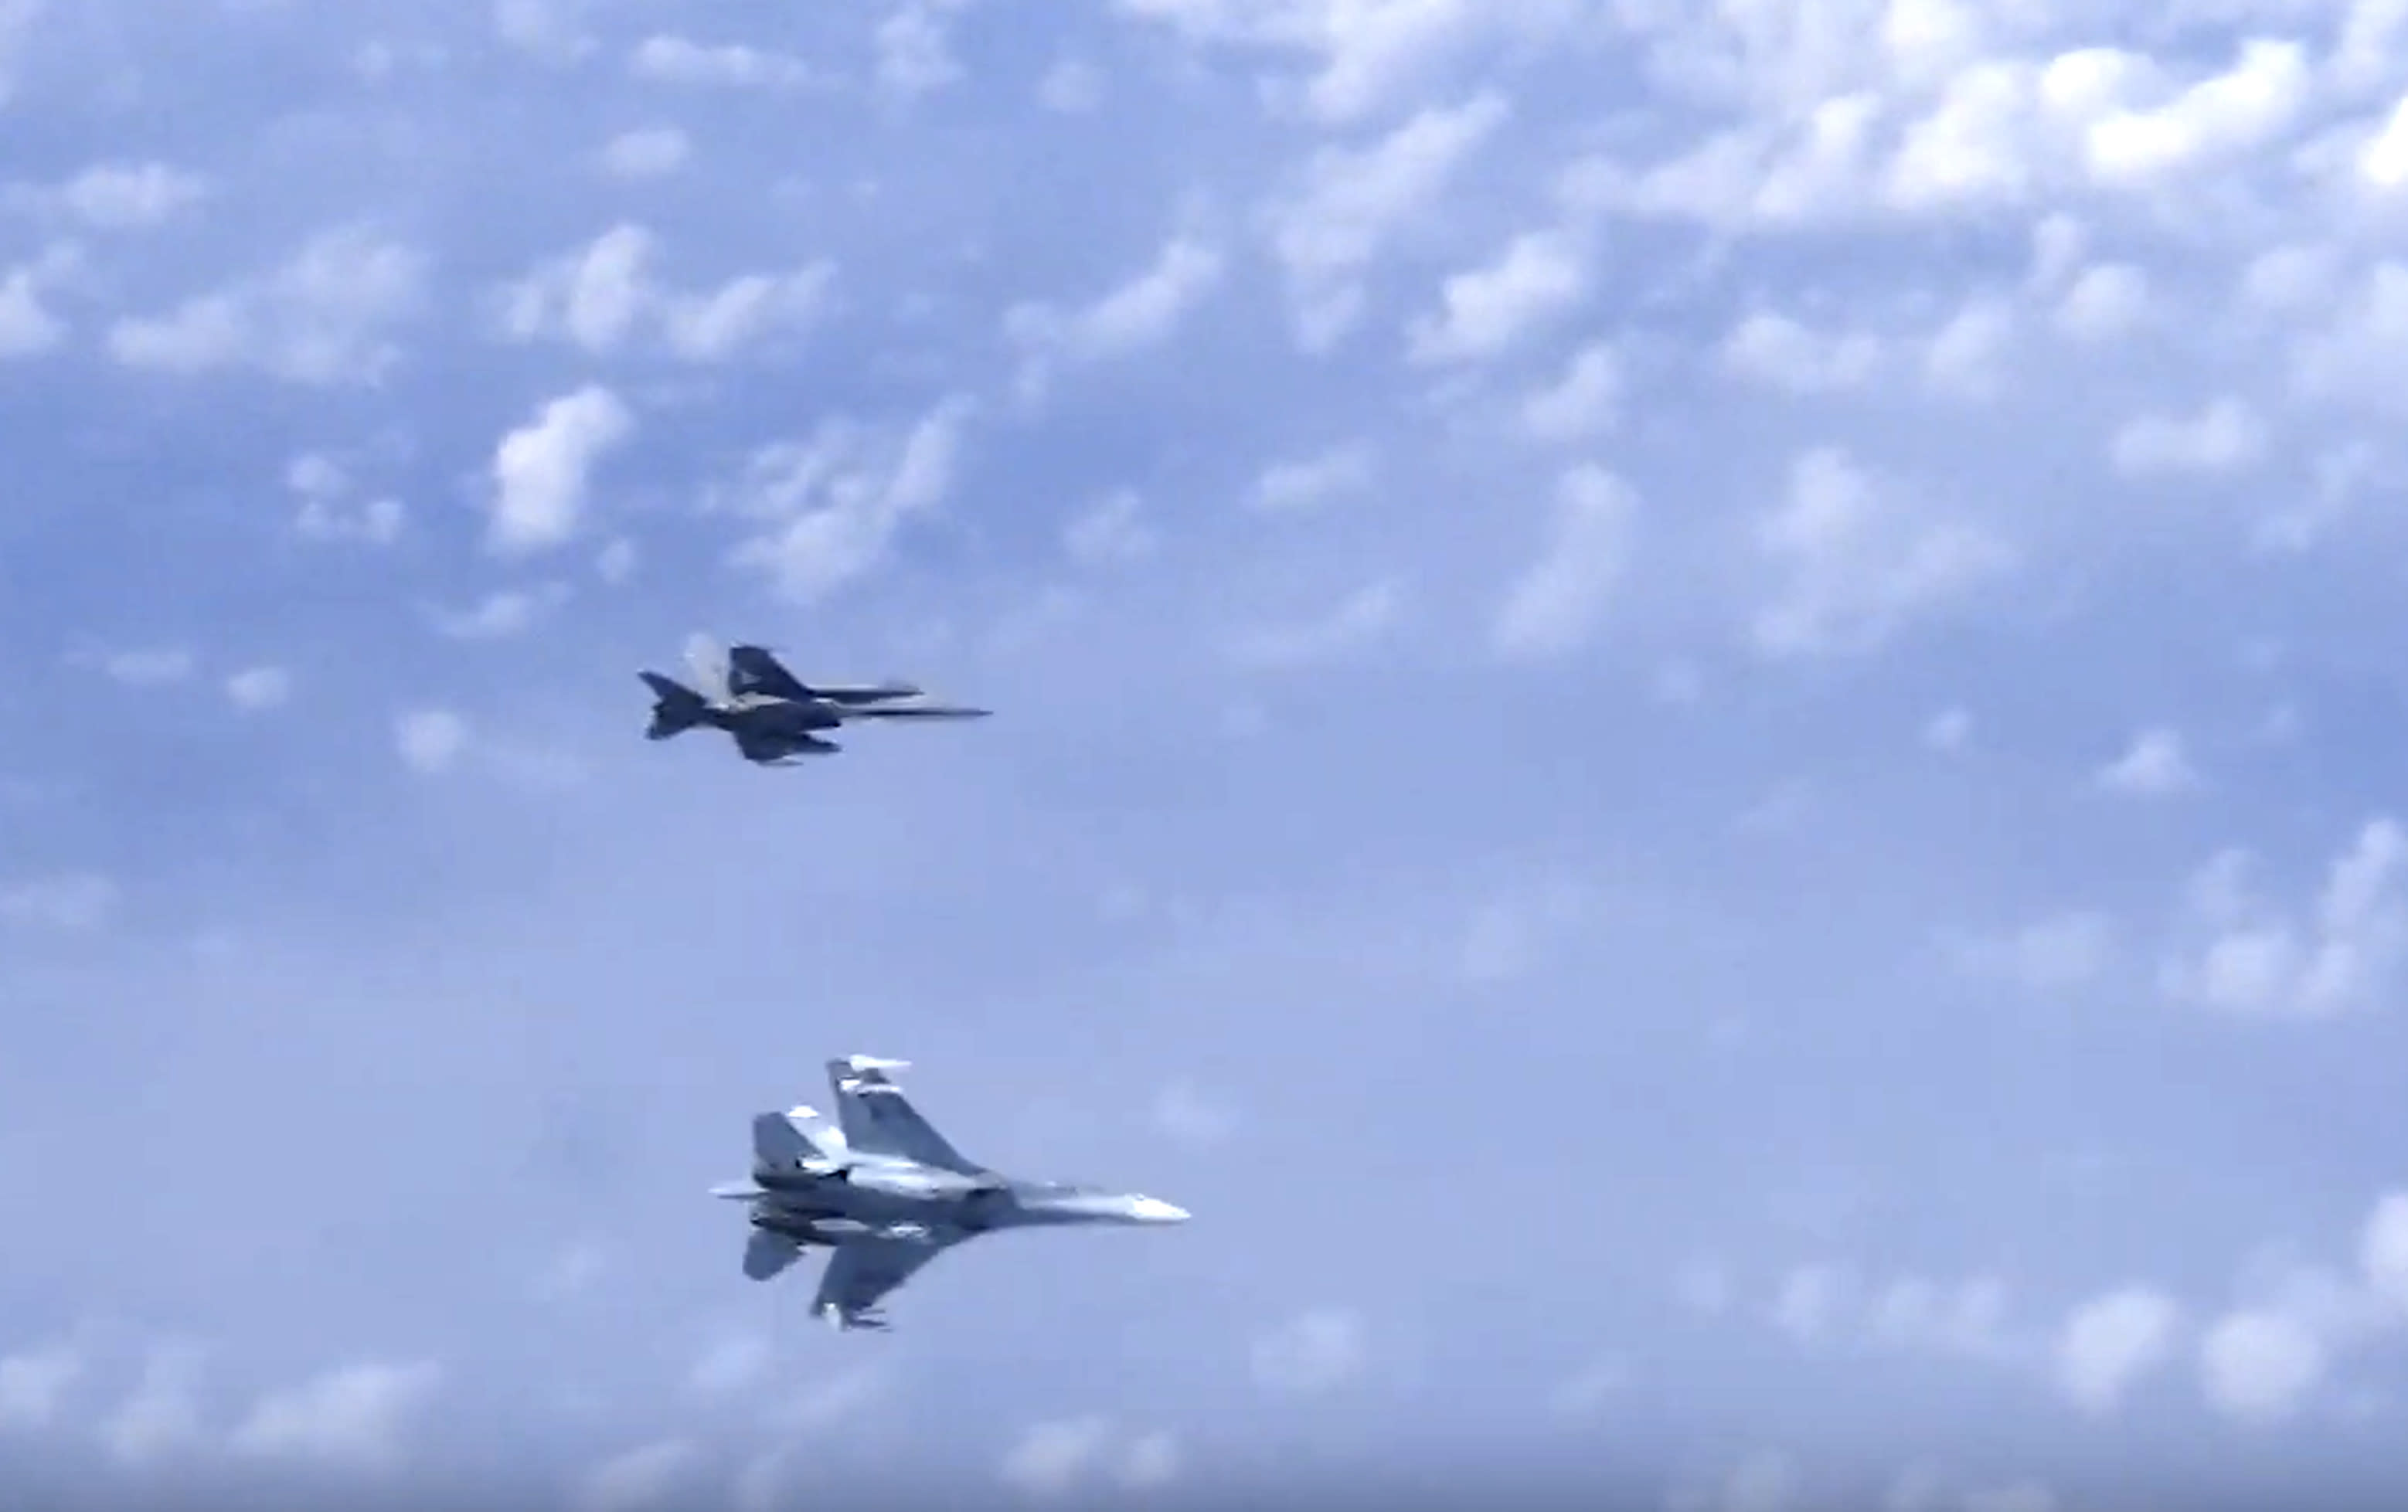 Russian Jet Chases NATO Plane Away From Minister's Aircraft